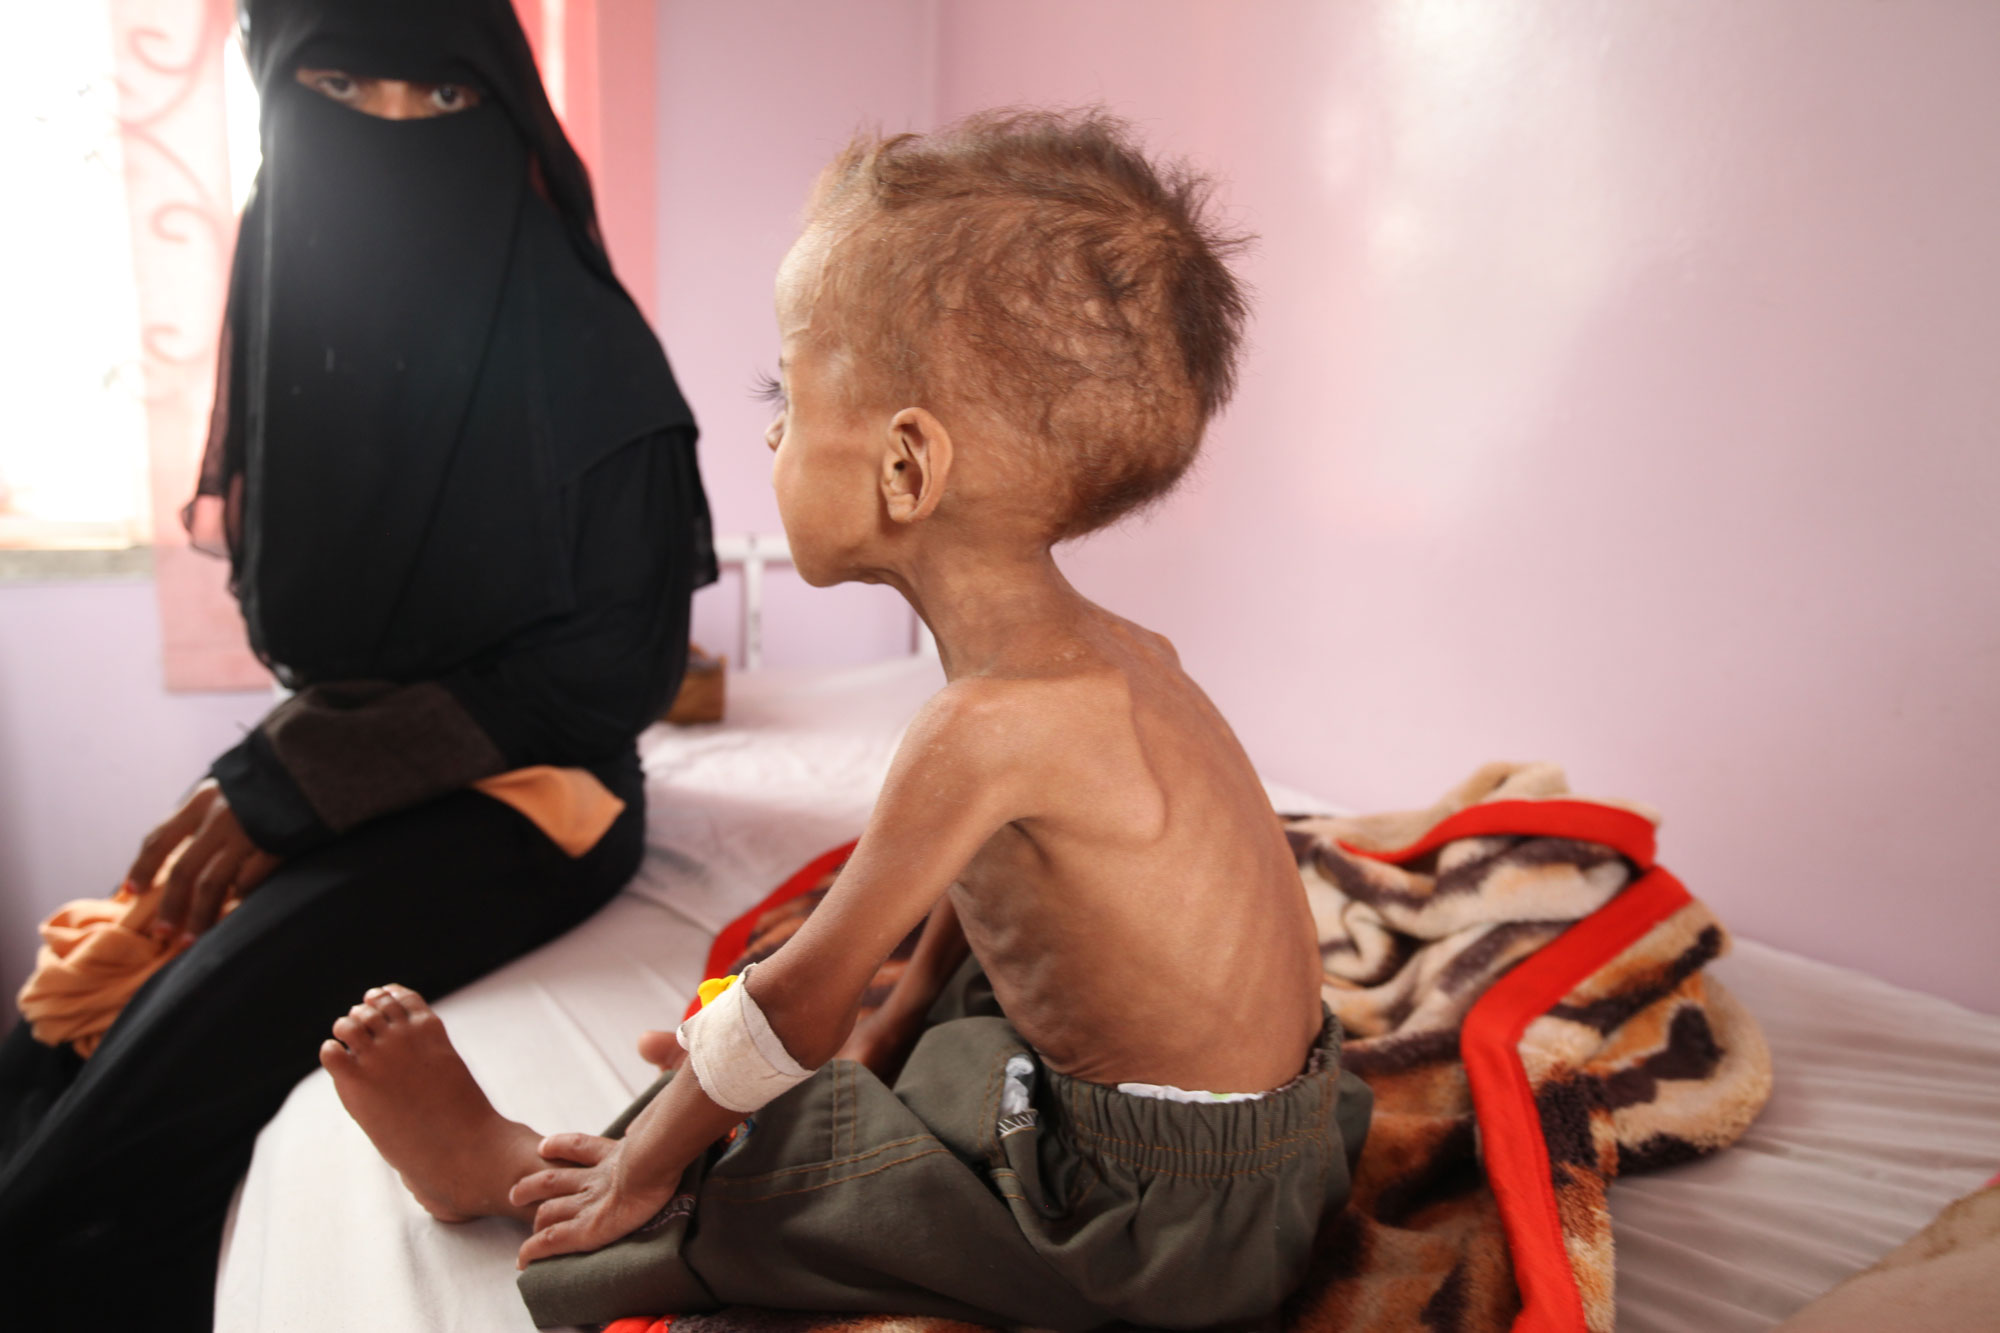 At a hospital in Yemen's capital, Sana'a, 18-month-old Faisal is treated for severe acute malnutrition. His mother braved a two-day journey to take him to the hospital from her village – a trip that would have taken four hours by bus in peace time. UNICEF/UNI191723/Yasin